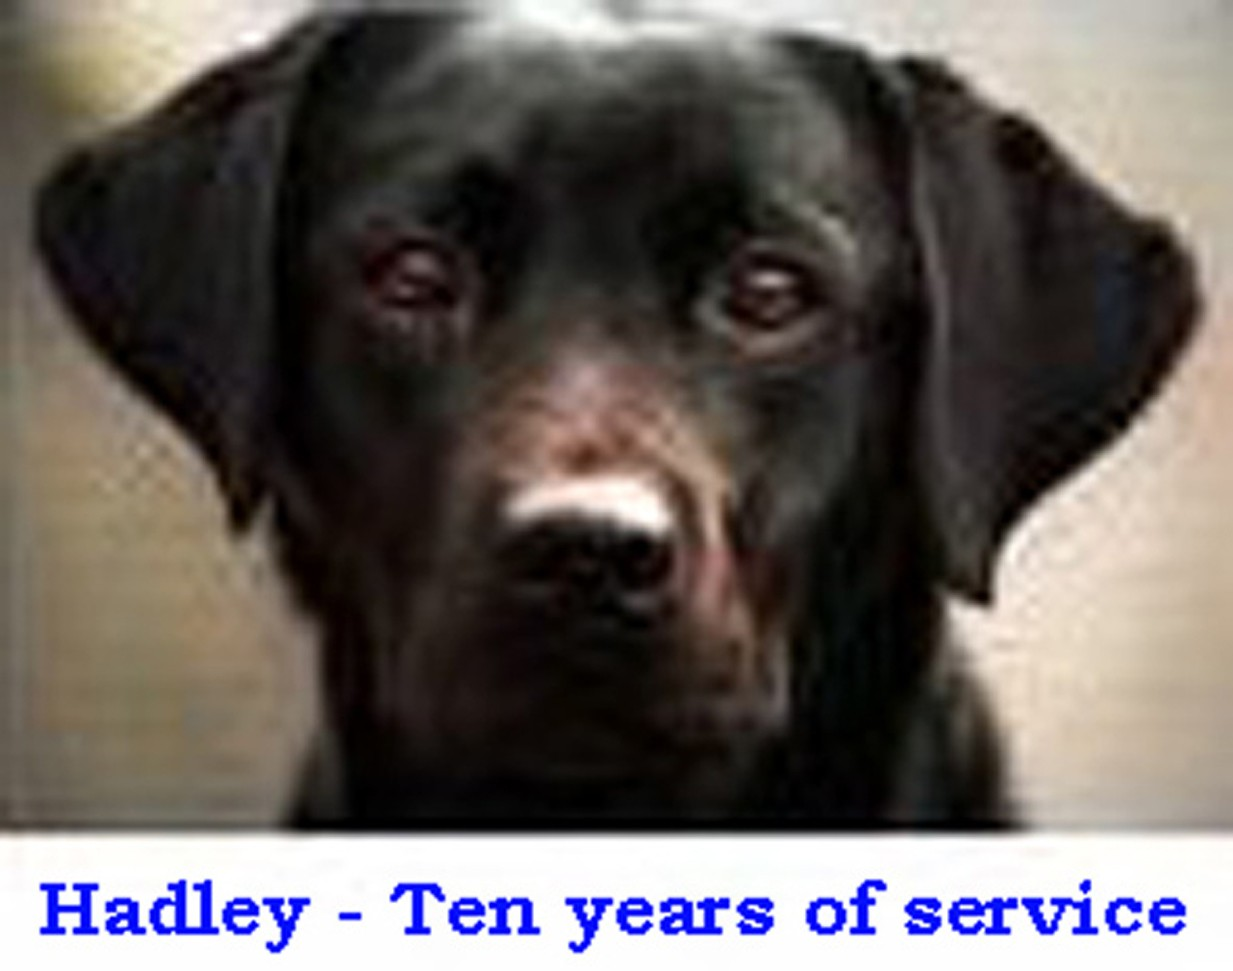 Hadley,; Guiding Eyes for the Blind